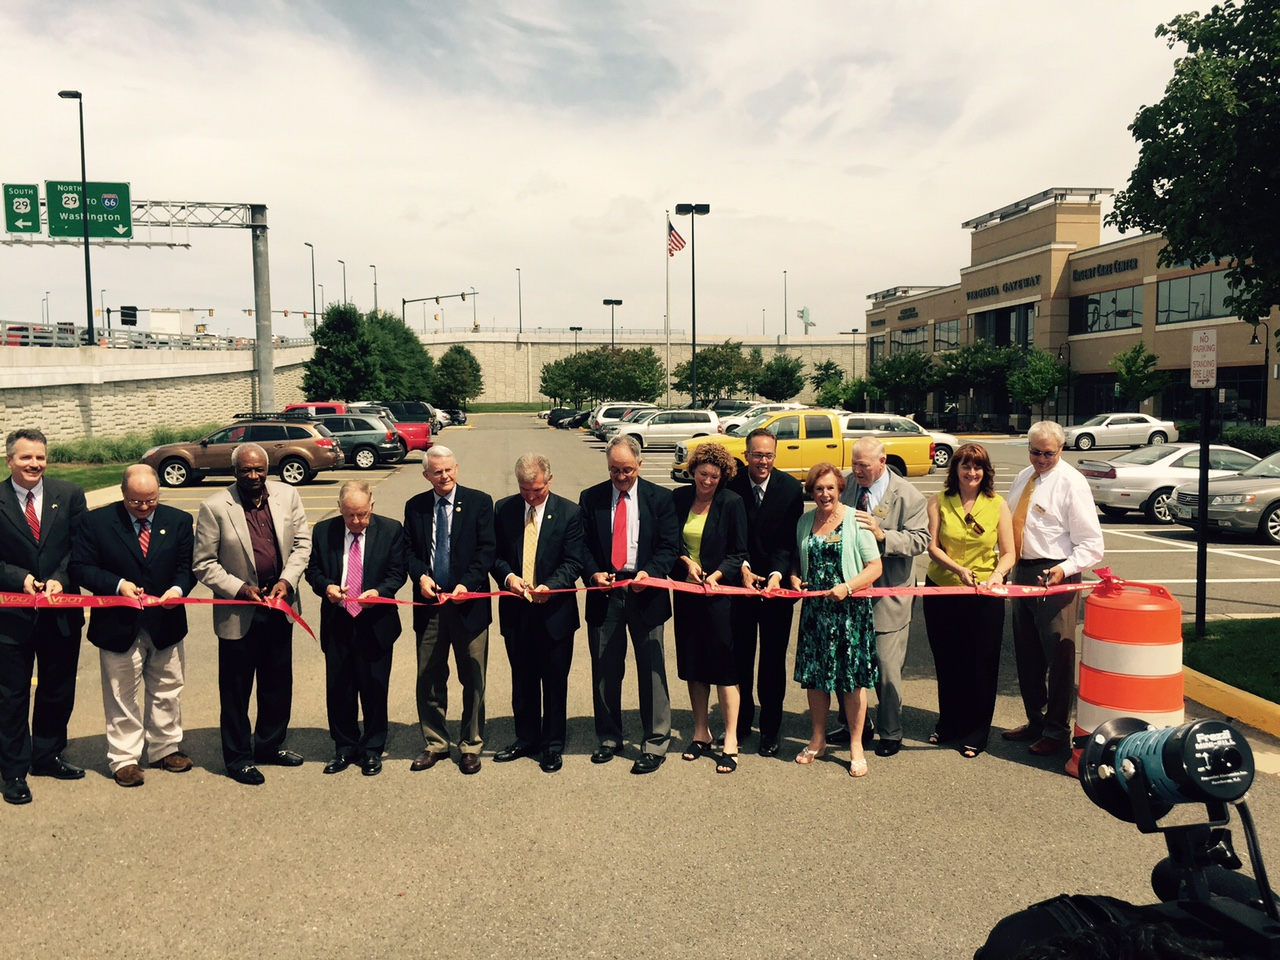 A ribbon cutting for the project in a parking lot next to interchange on Thursday. (WTOP/Max Smith)